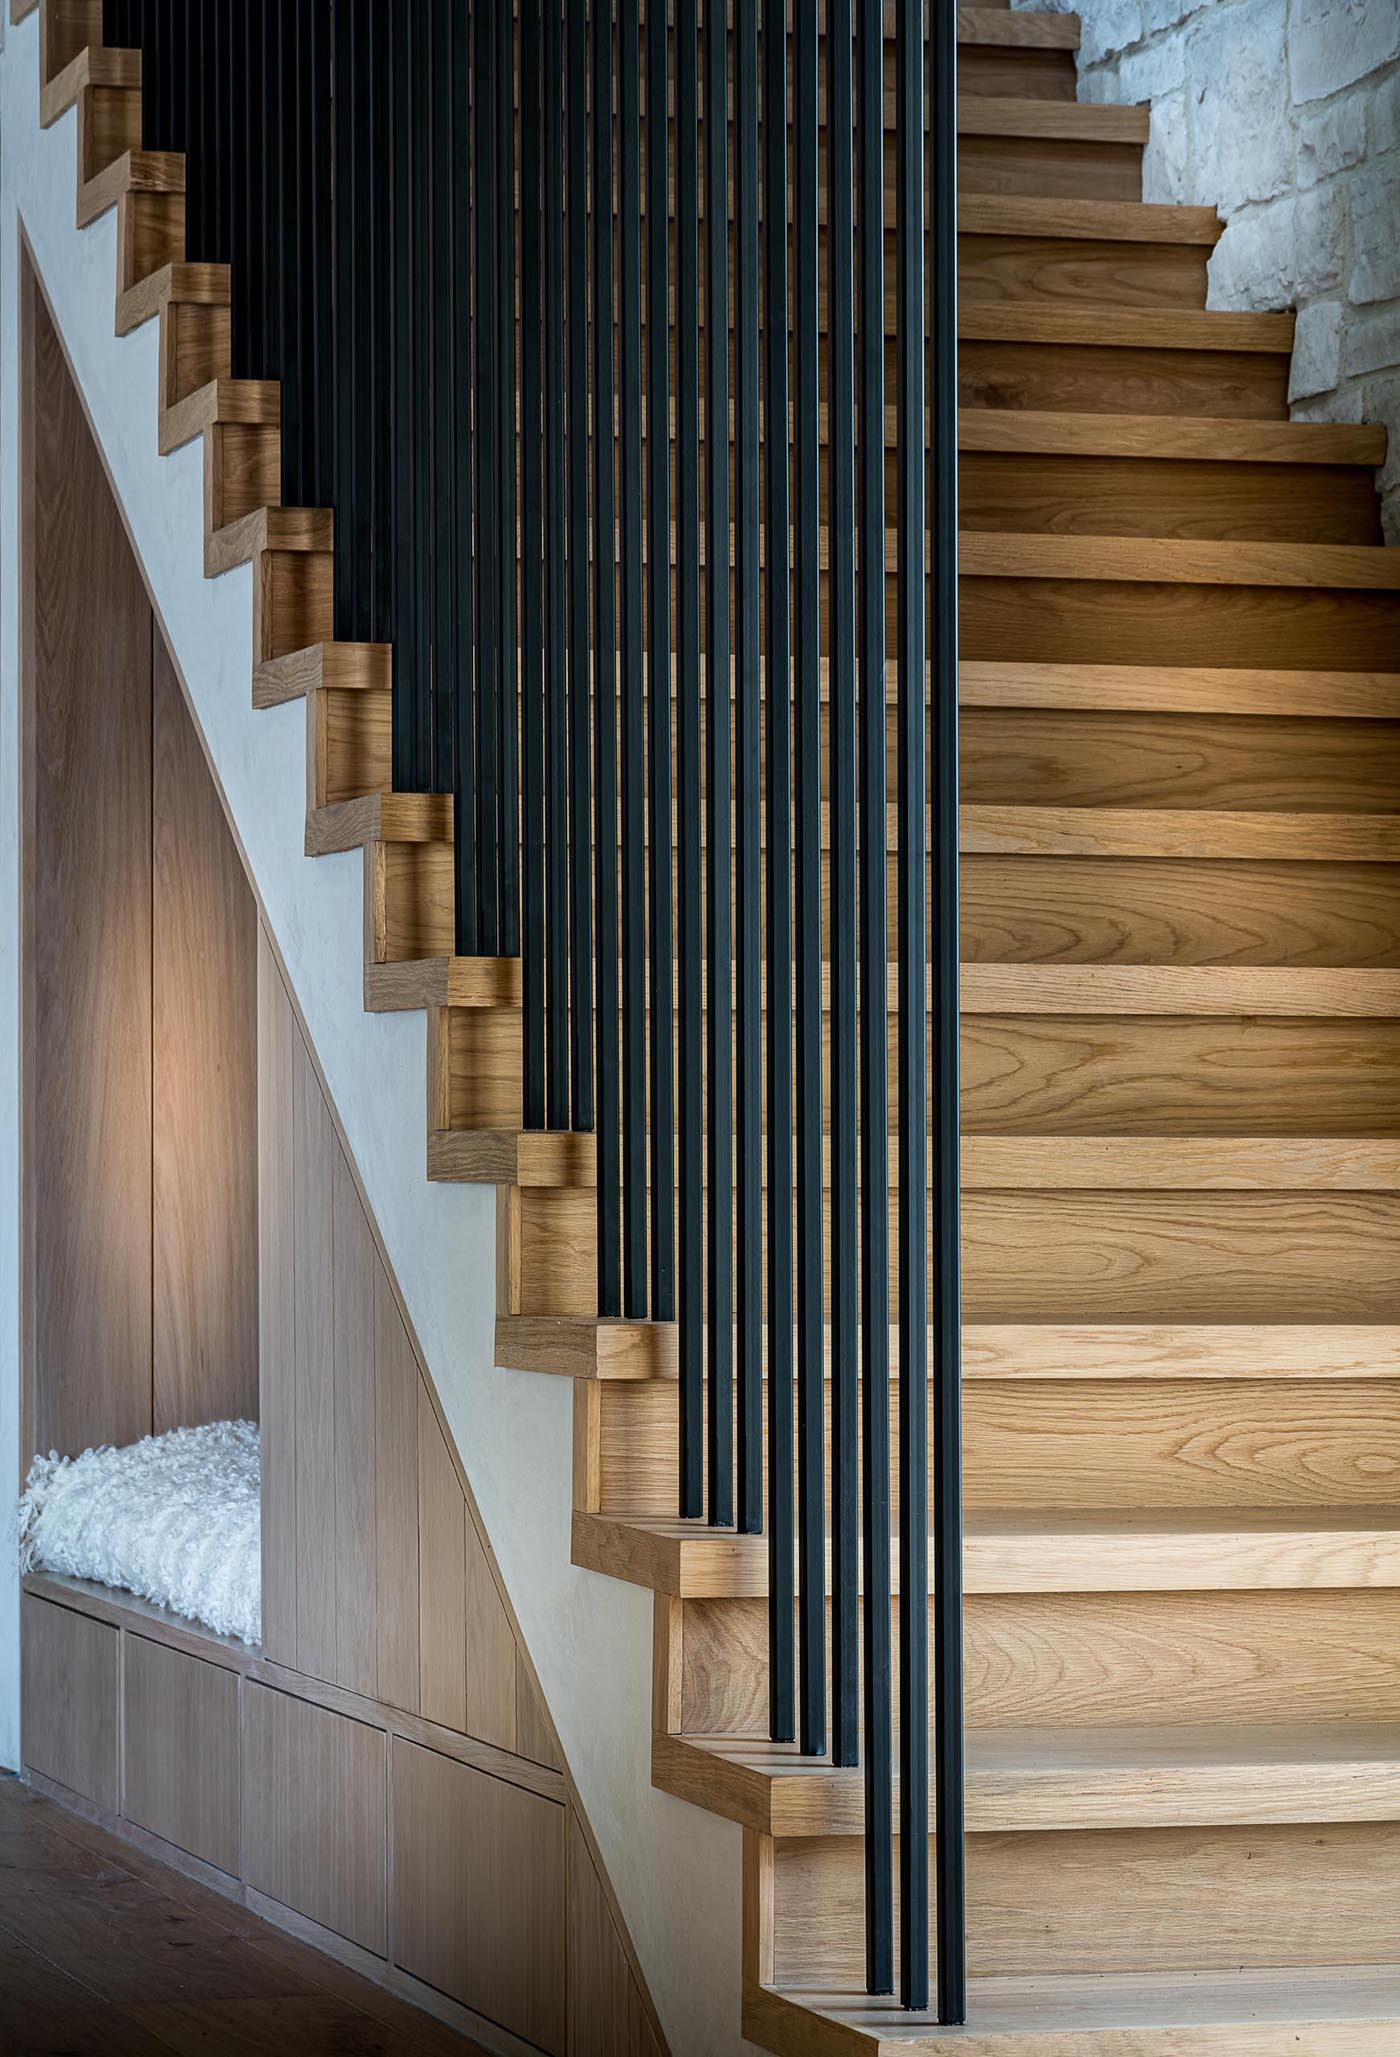 From this angle, which also shows the design of the stairs, you can see how neatly the seating nook and storage is tucked away into the available space.